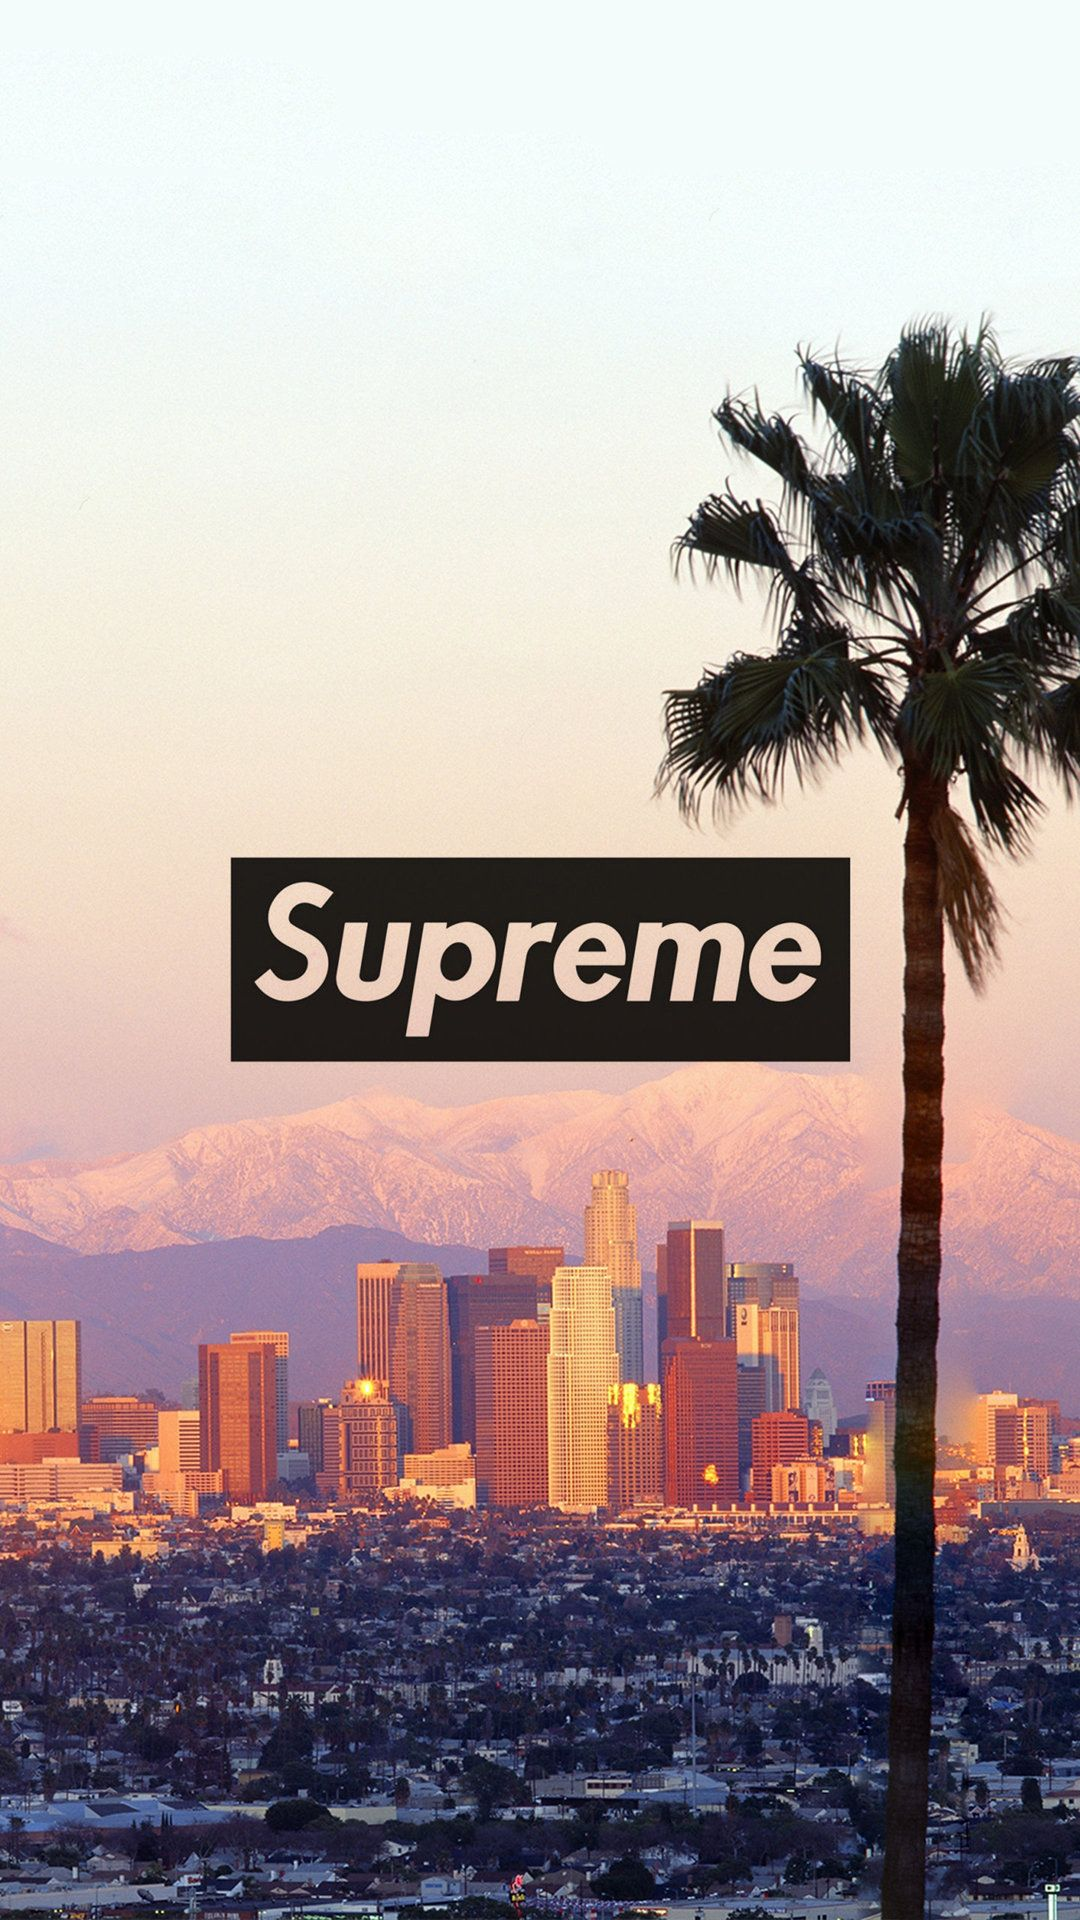 Supreme Los Angeles   Tap to see more of the Supreme wallpapers 1080x1920